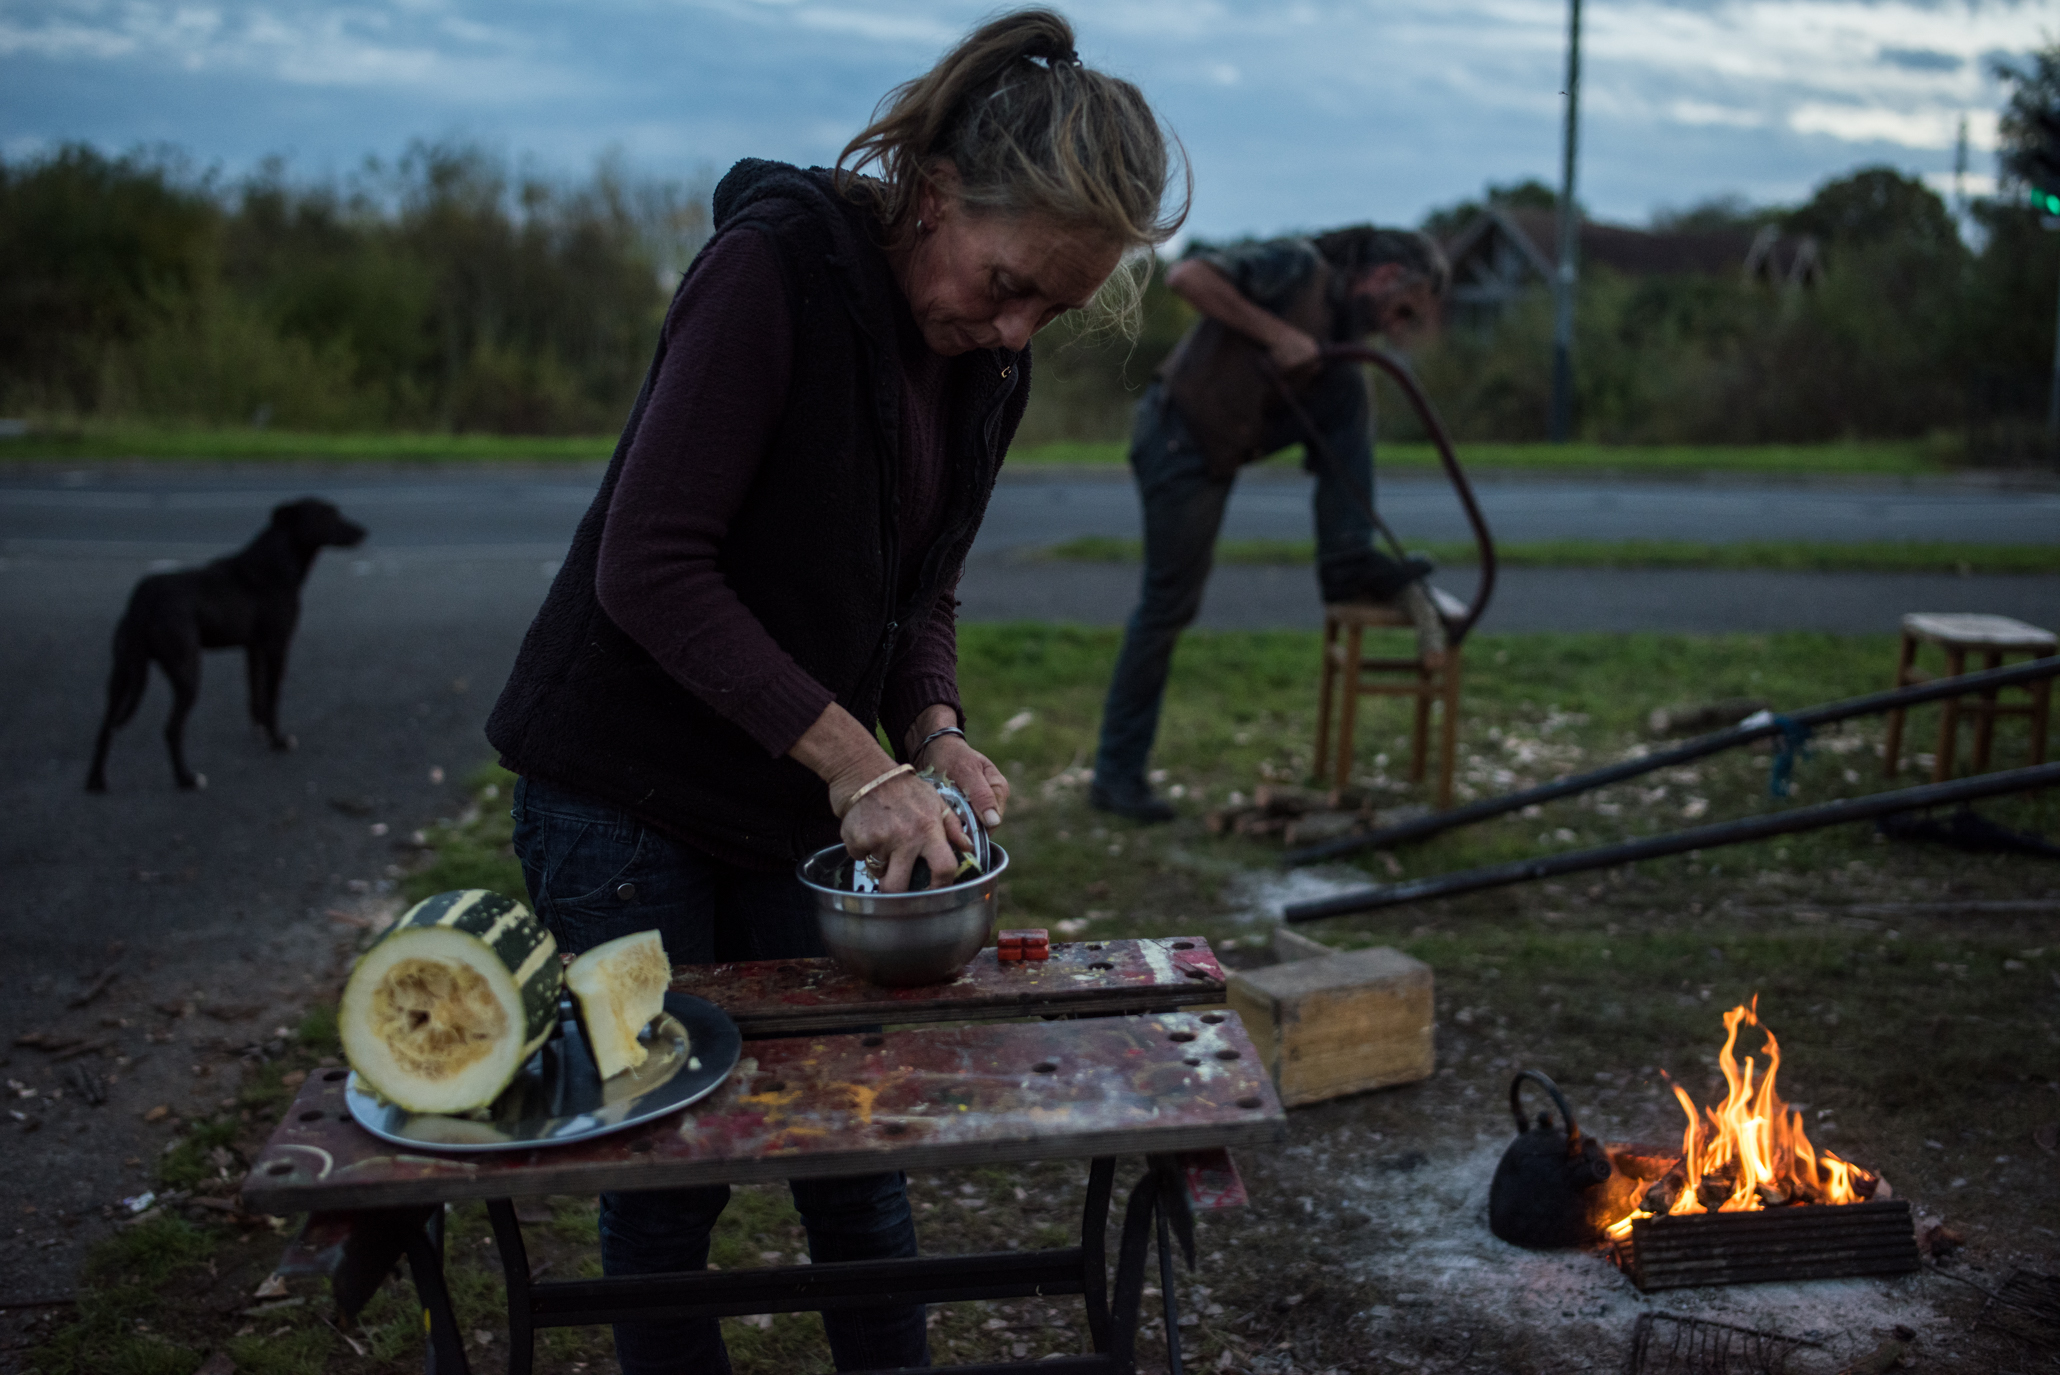 Cooking and Sawing Wood For The Fire. Stratford-upon-Avon, England, 2017